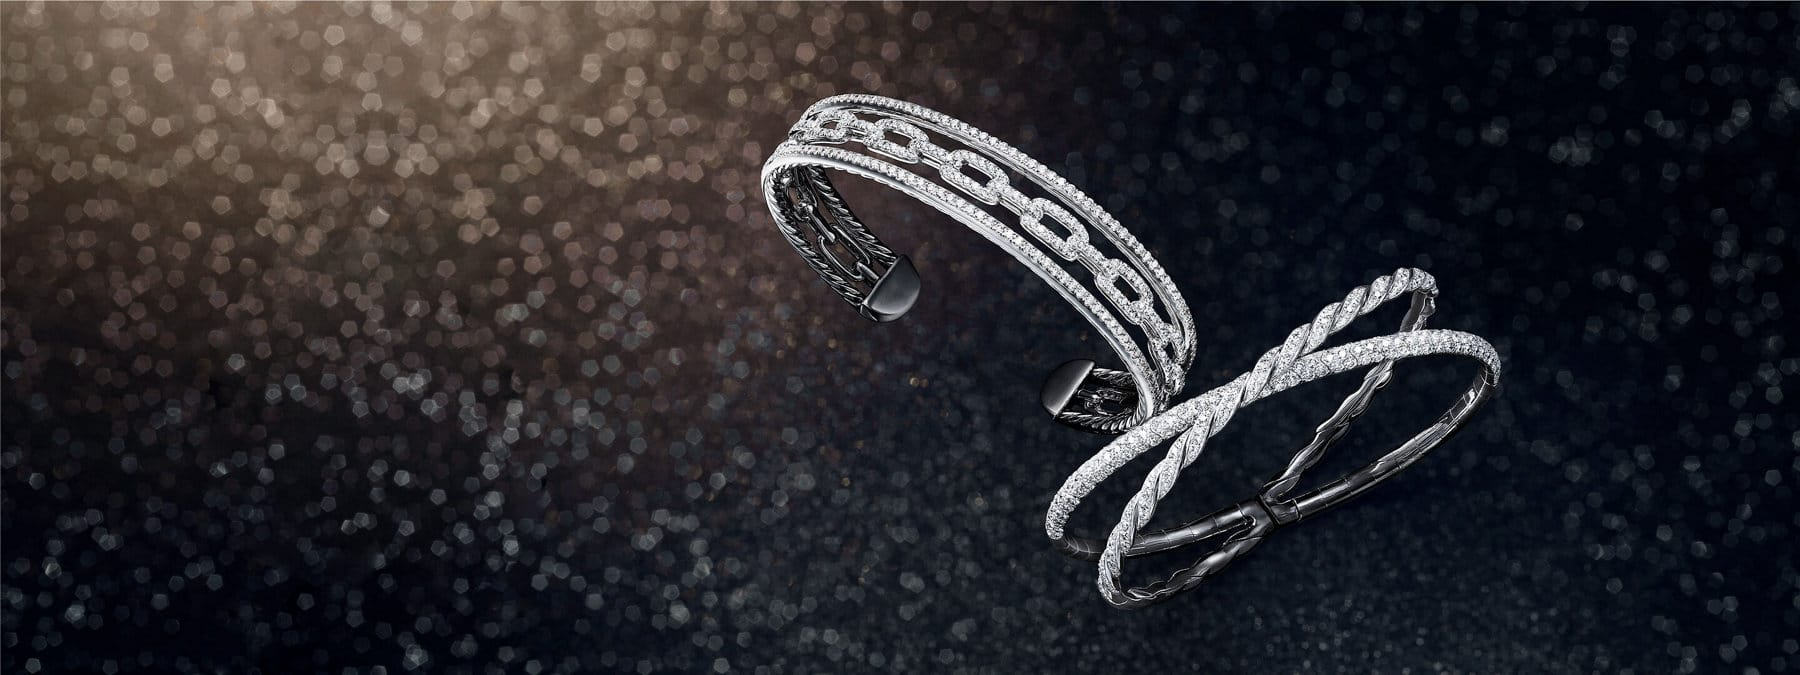 A color photo shows three David Yurman Pavéflex cuff bracelets for women scattered from a black glittery background. The women's cuff bracelets combine multiple rows of Cable with rows of pavé white diamonds, creating the look multiple bracelets in one. The jewelry is crafted from 18K white and rose gold, 18K white gold or 18K white, yellow and rose gold.